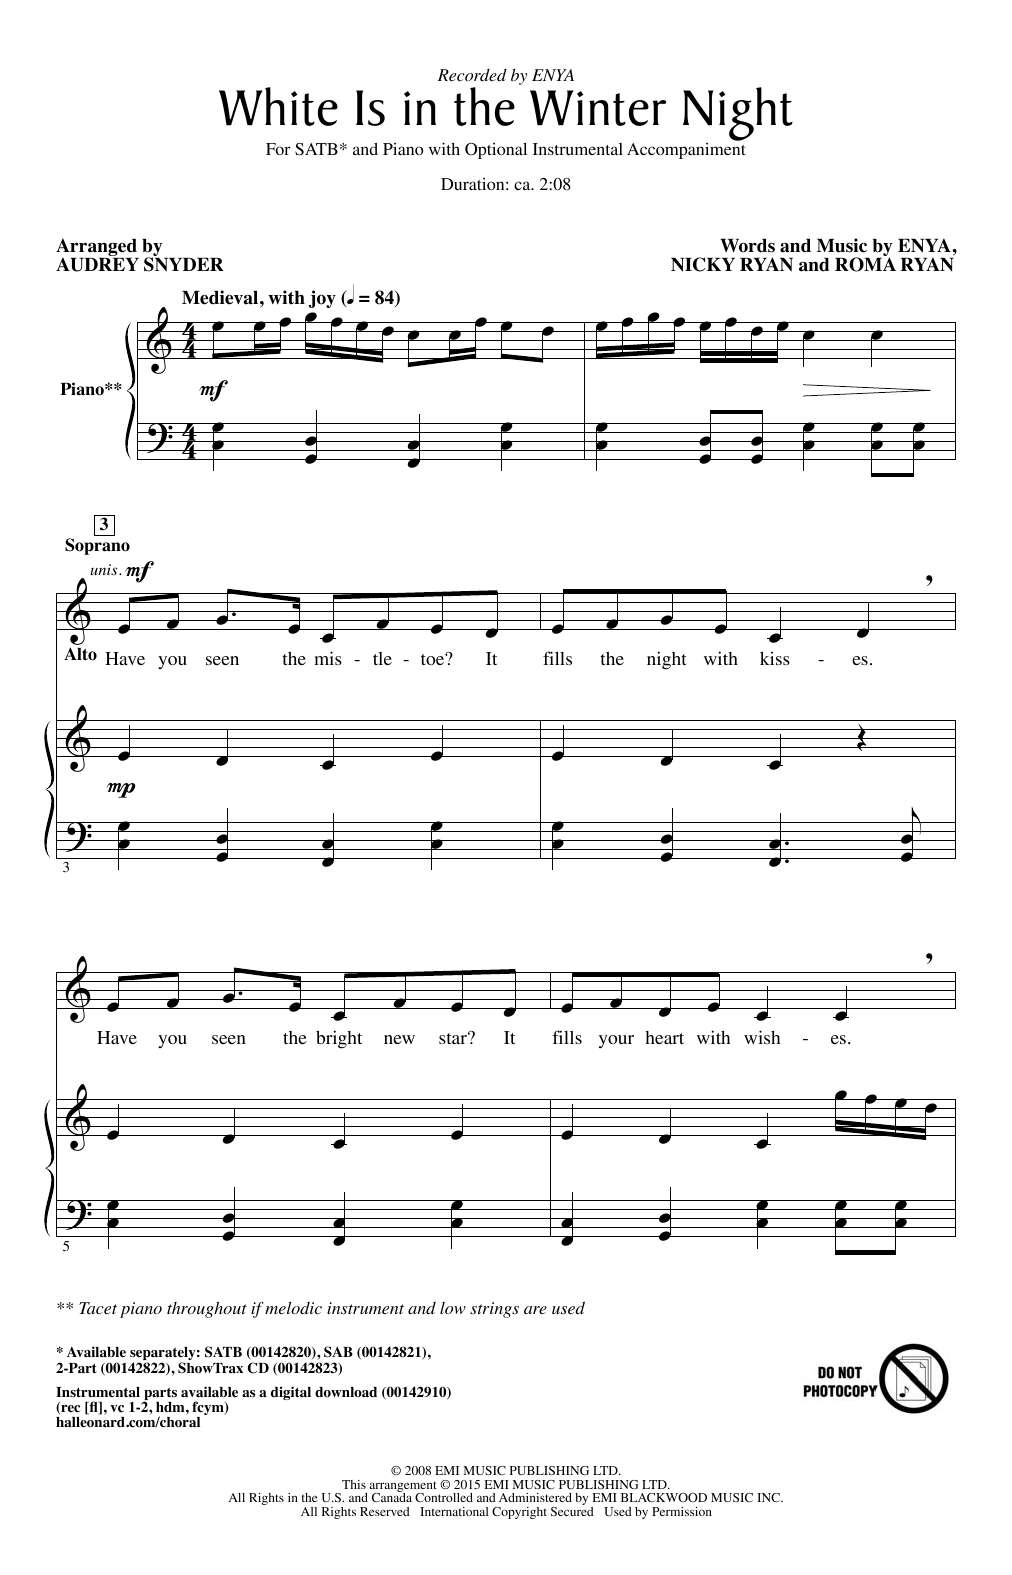 White Is In The Winter Night (arr. Audrey Snyder) (SATB Choir)